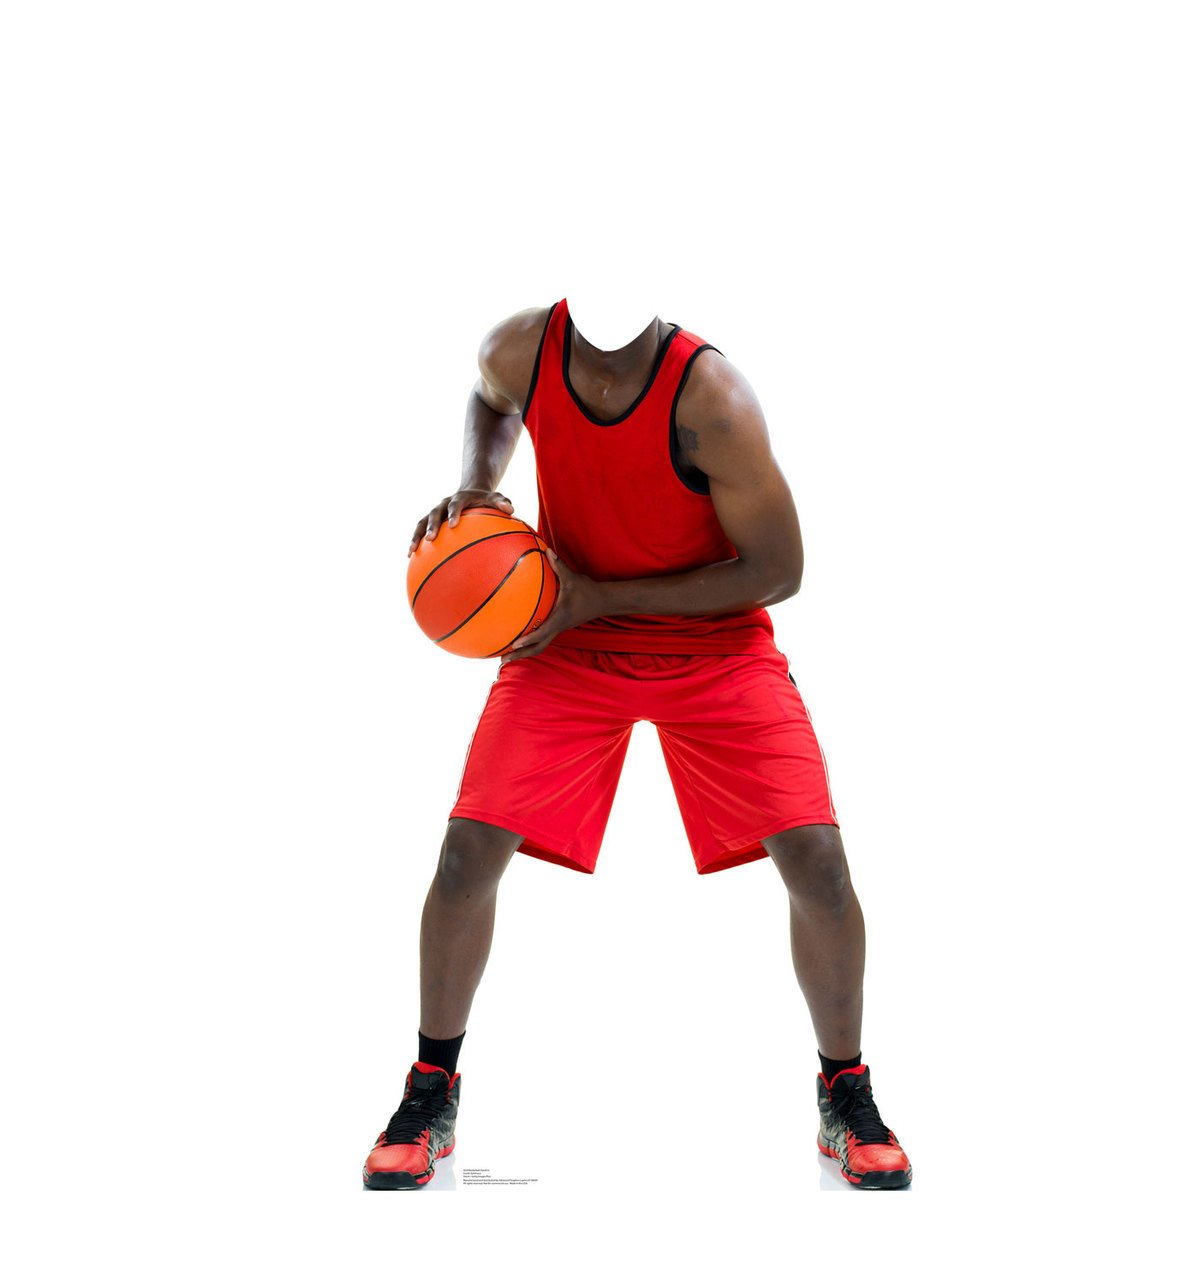 Basketball Player Stand-In - Advanced Graphics Life Size Cardboard Standup by Advanced Graphics